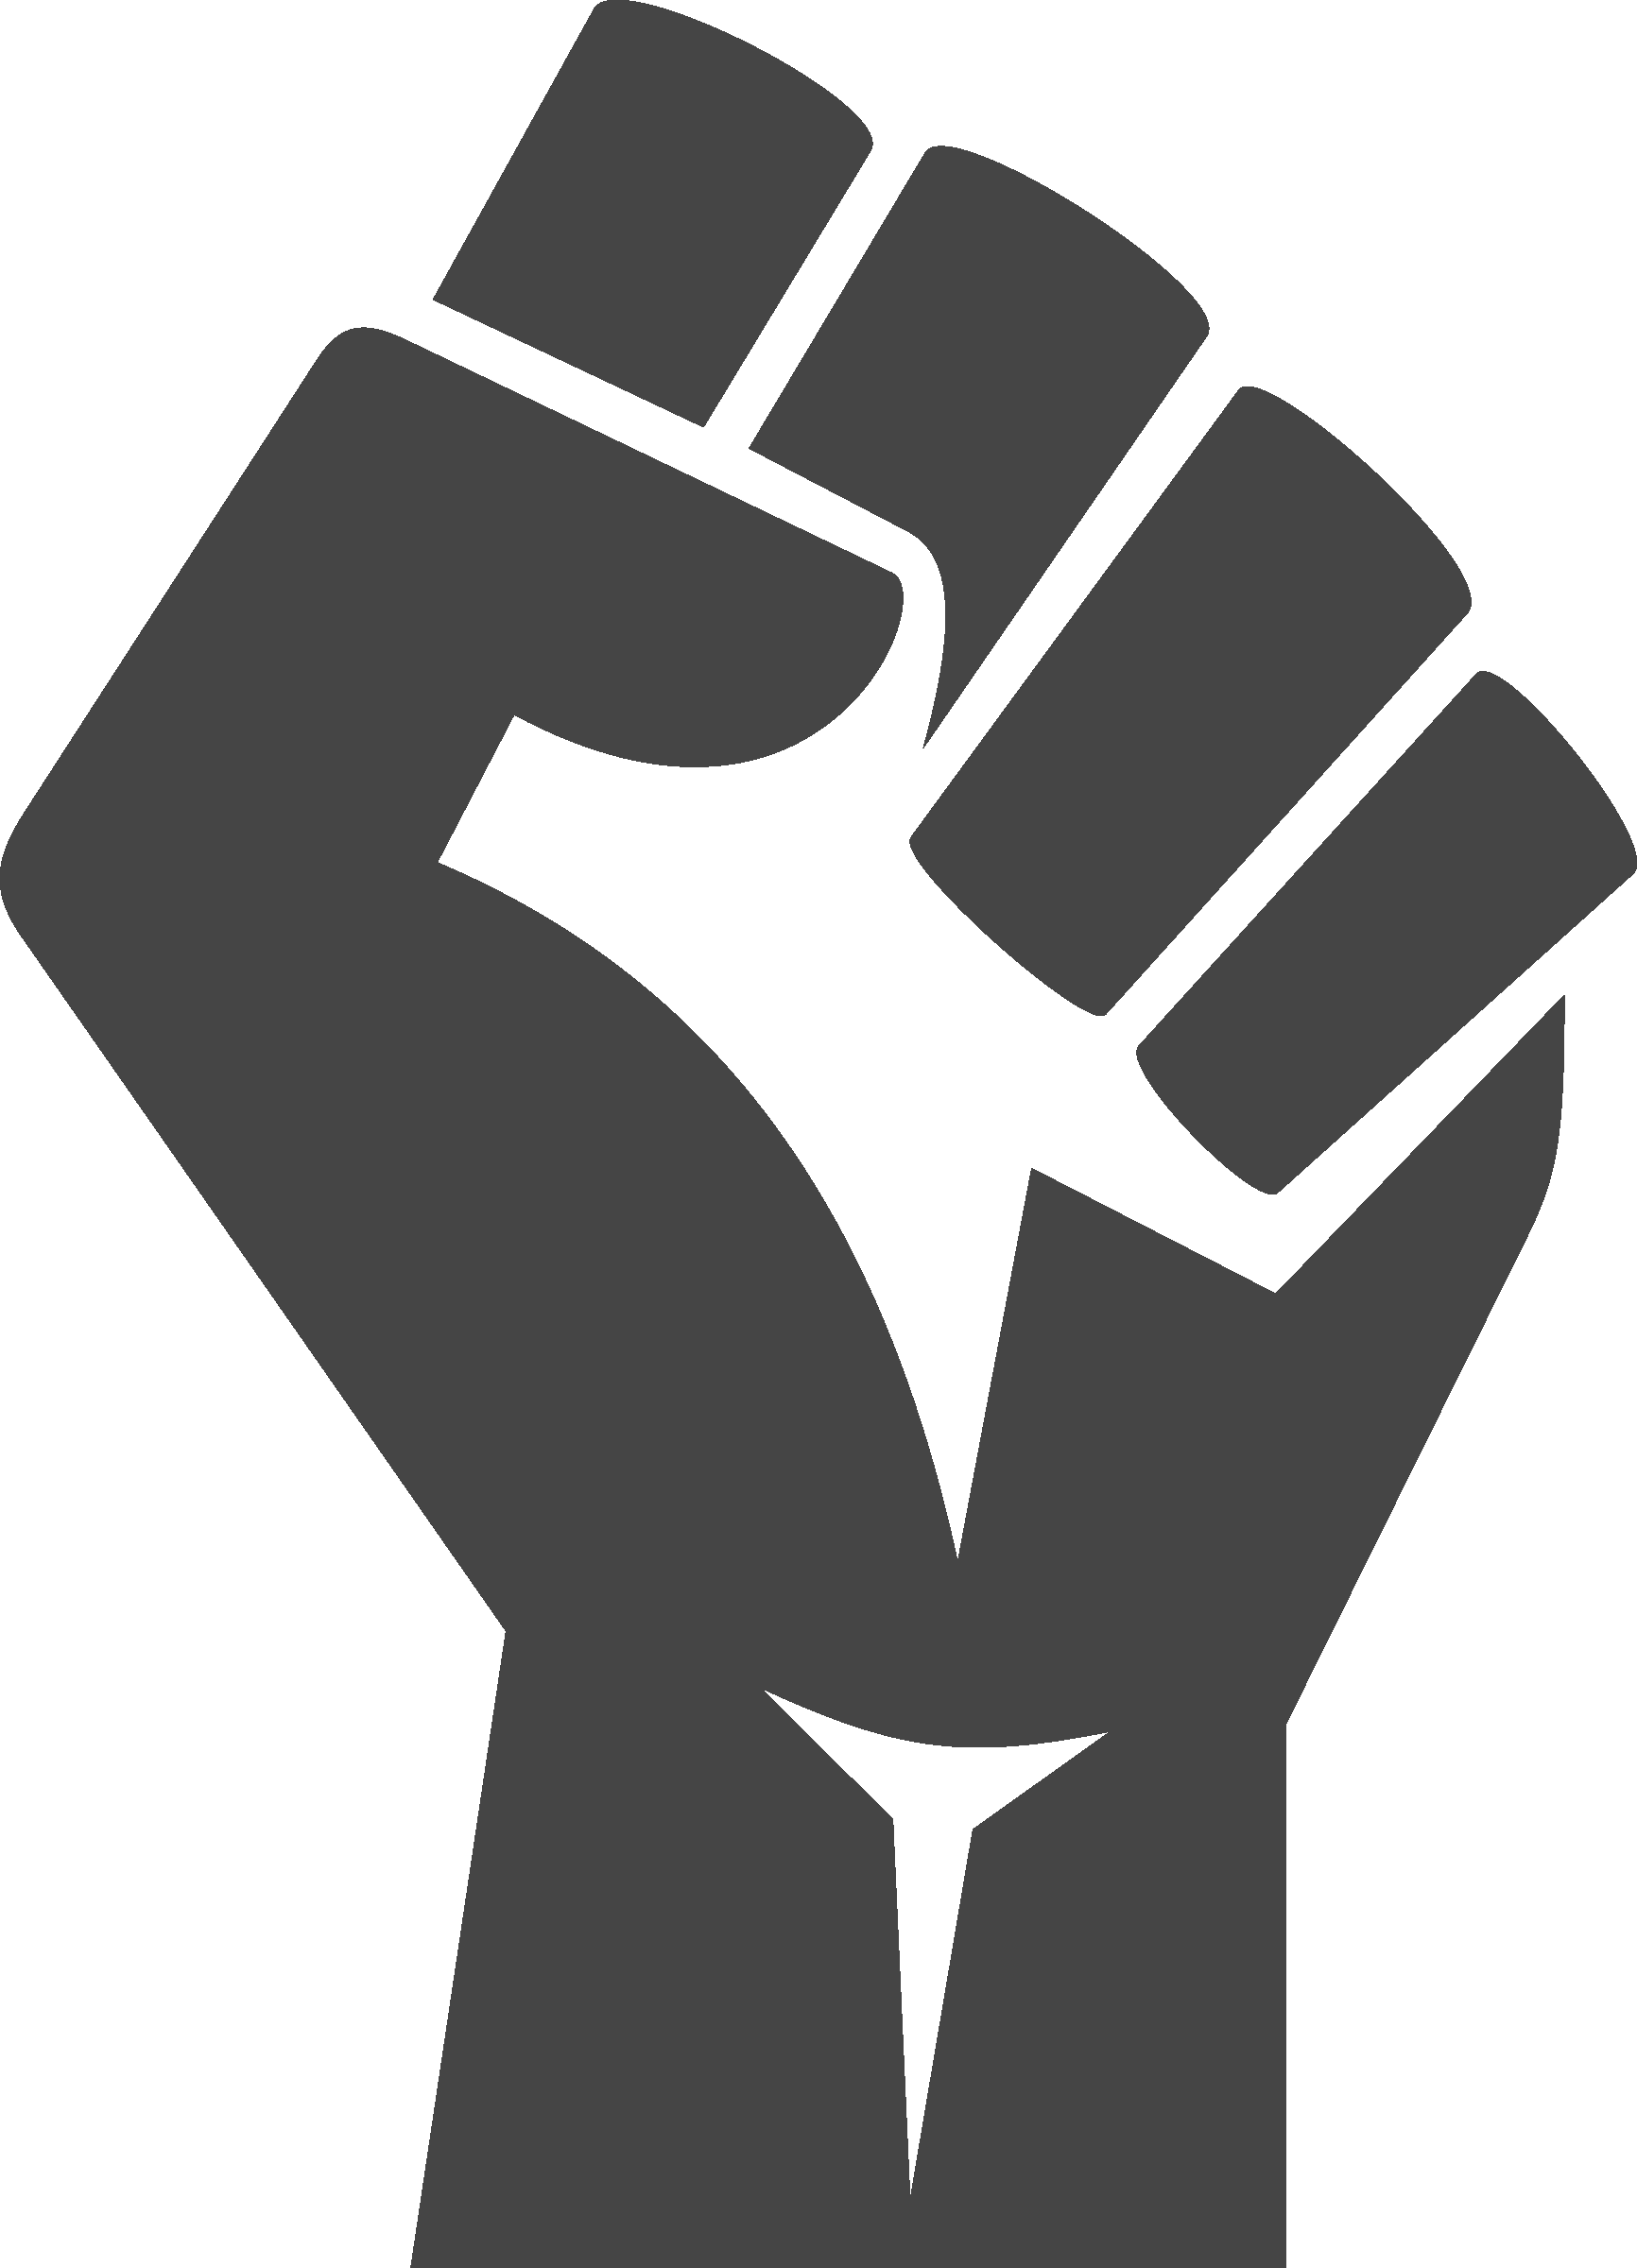 Fist clipart socialism. Pin by estee on